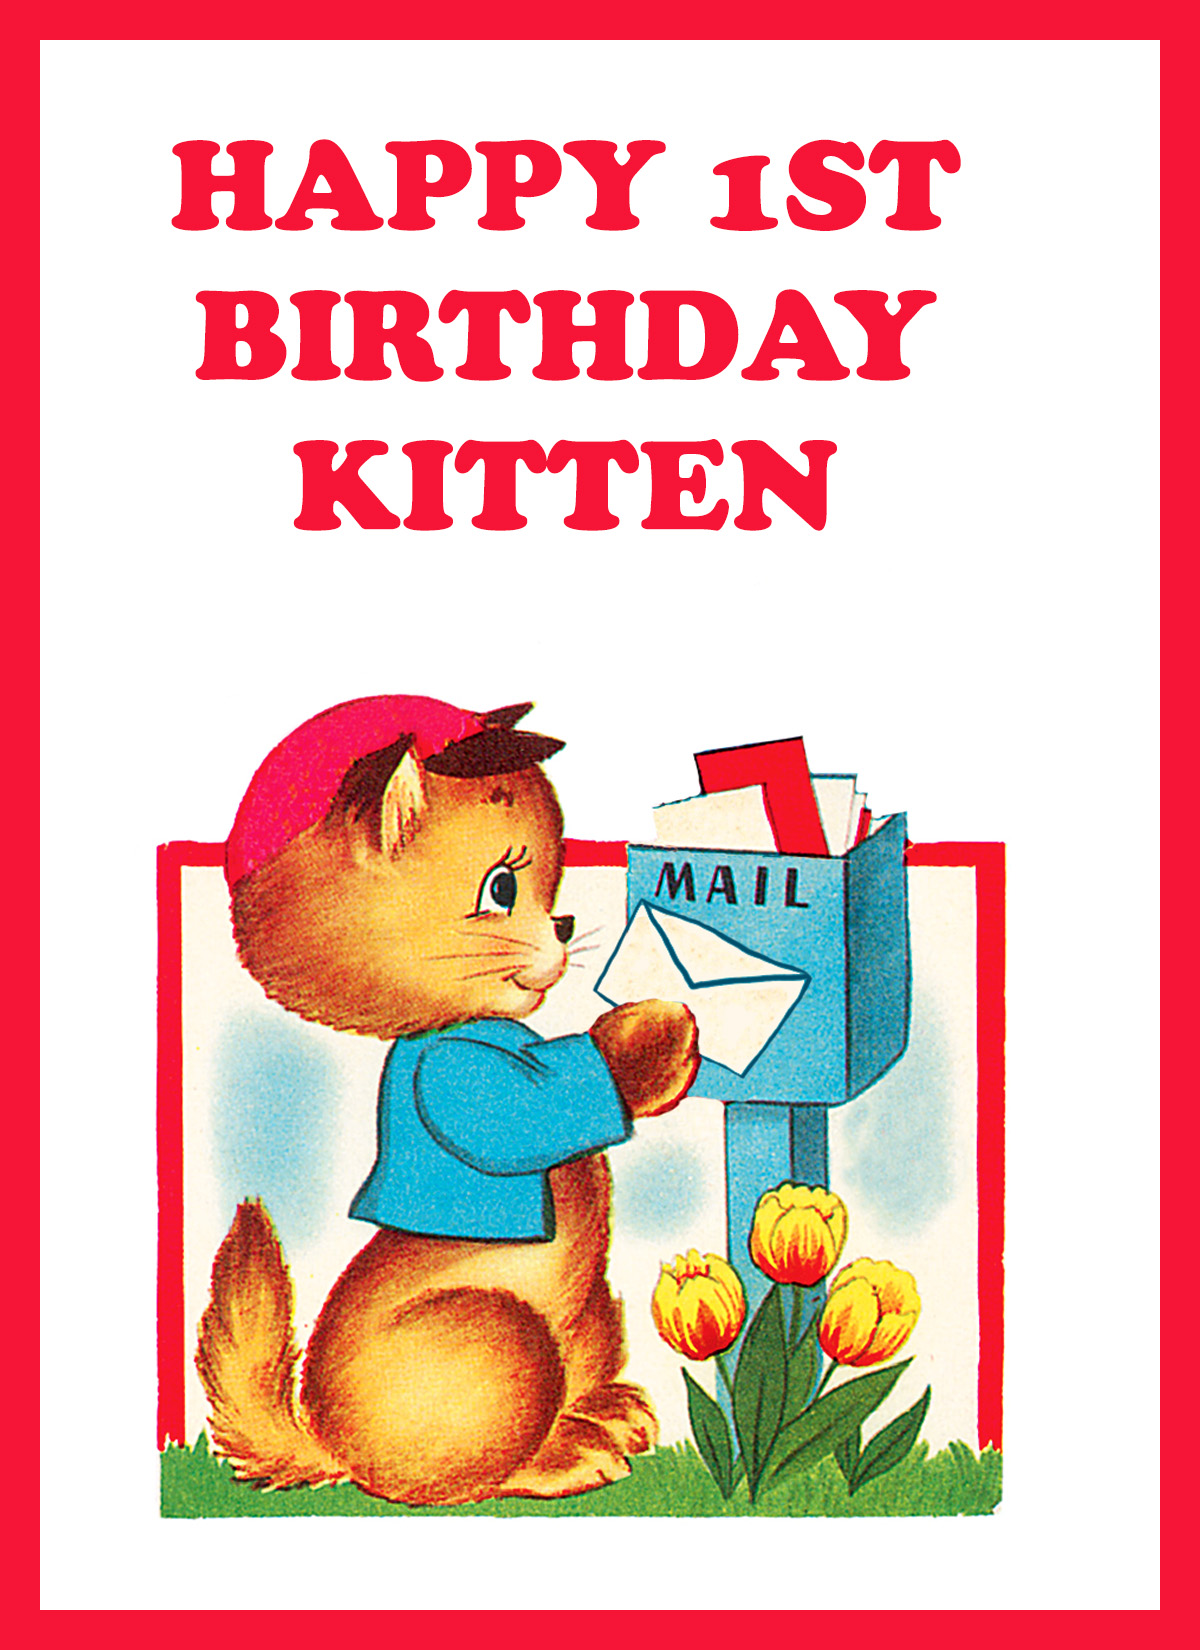 printable 1st birthday cards ; 1ST-birthday-card-kitten-sending-card1